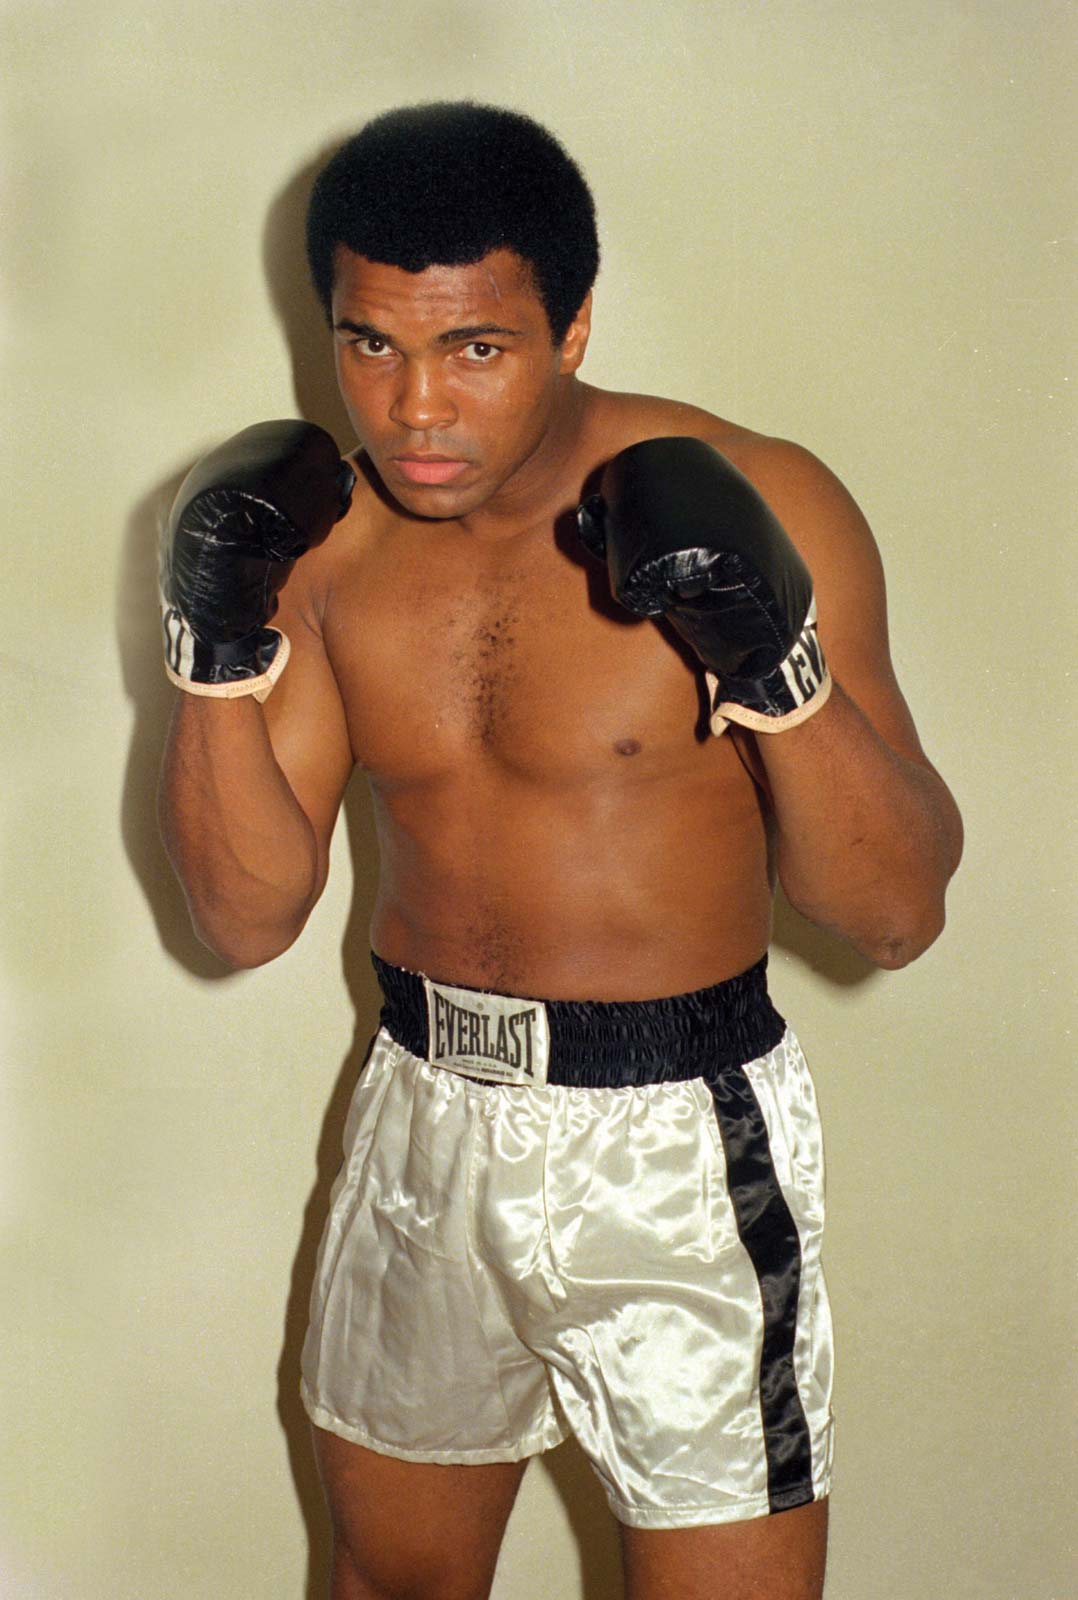 September 15 – Muhammad Alibecomes first boxer to win the heavyweight title thrice by beating Leon Spinks